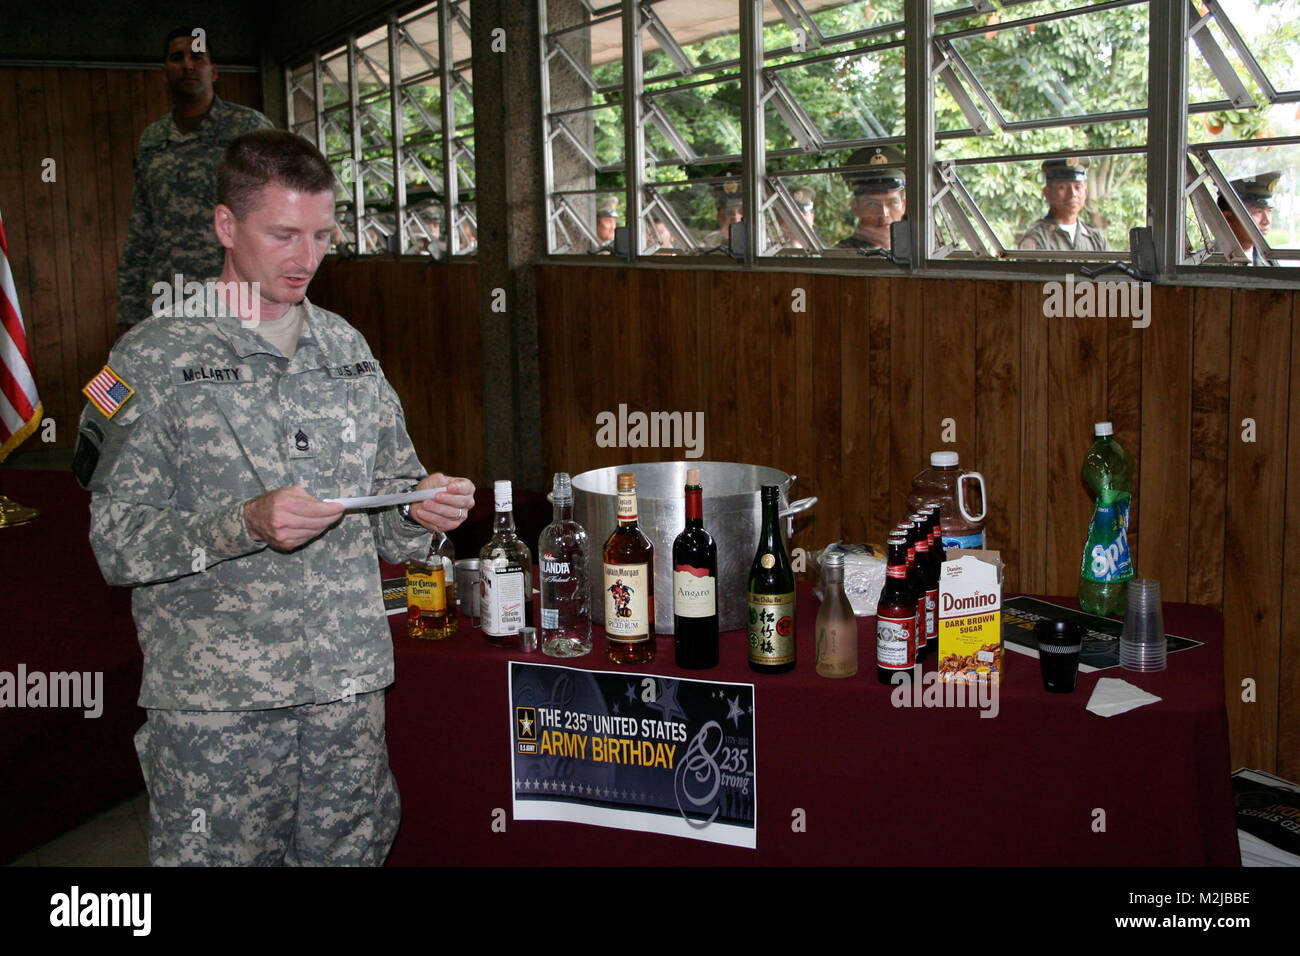 Sgt. 1st Class Samuel Mclarty prepares to add an ingredient to the grog bowl during the U.S. Army's 235th birthday - Stock Image